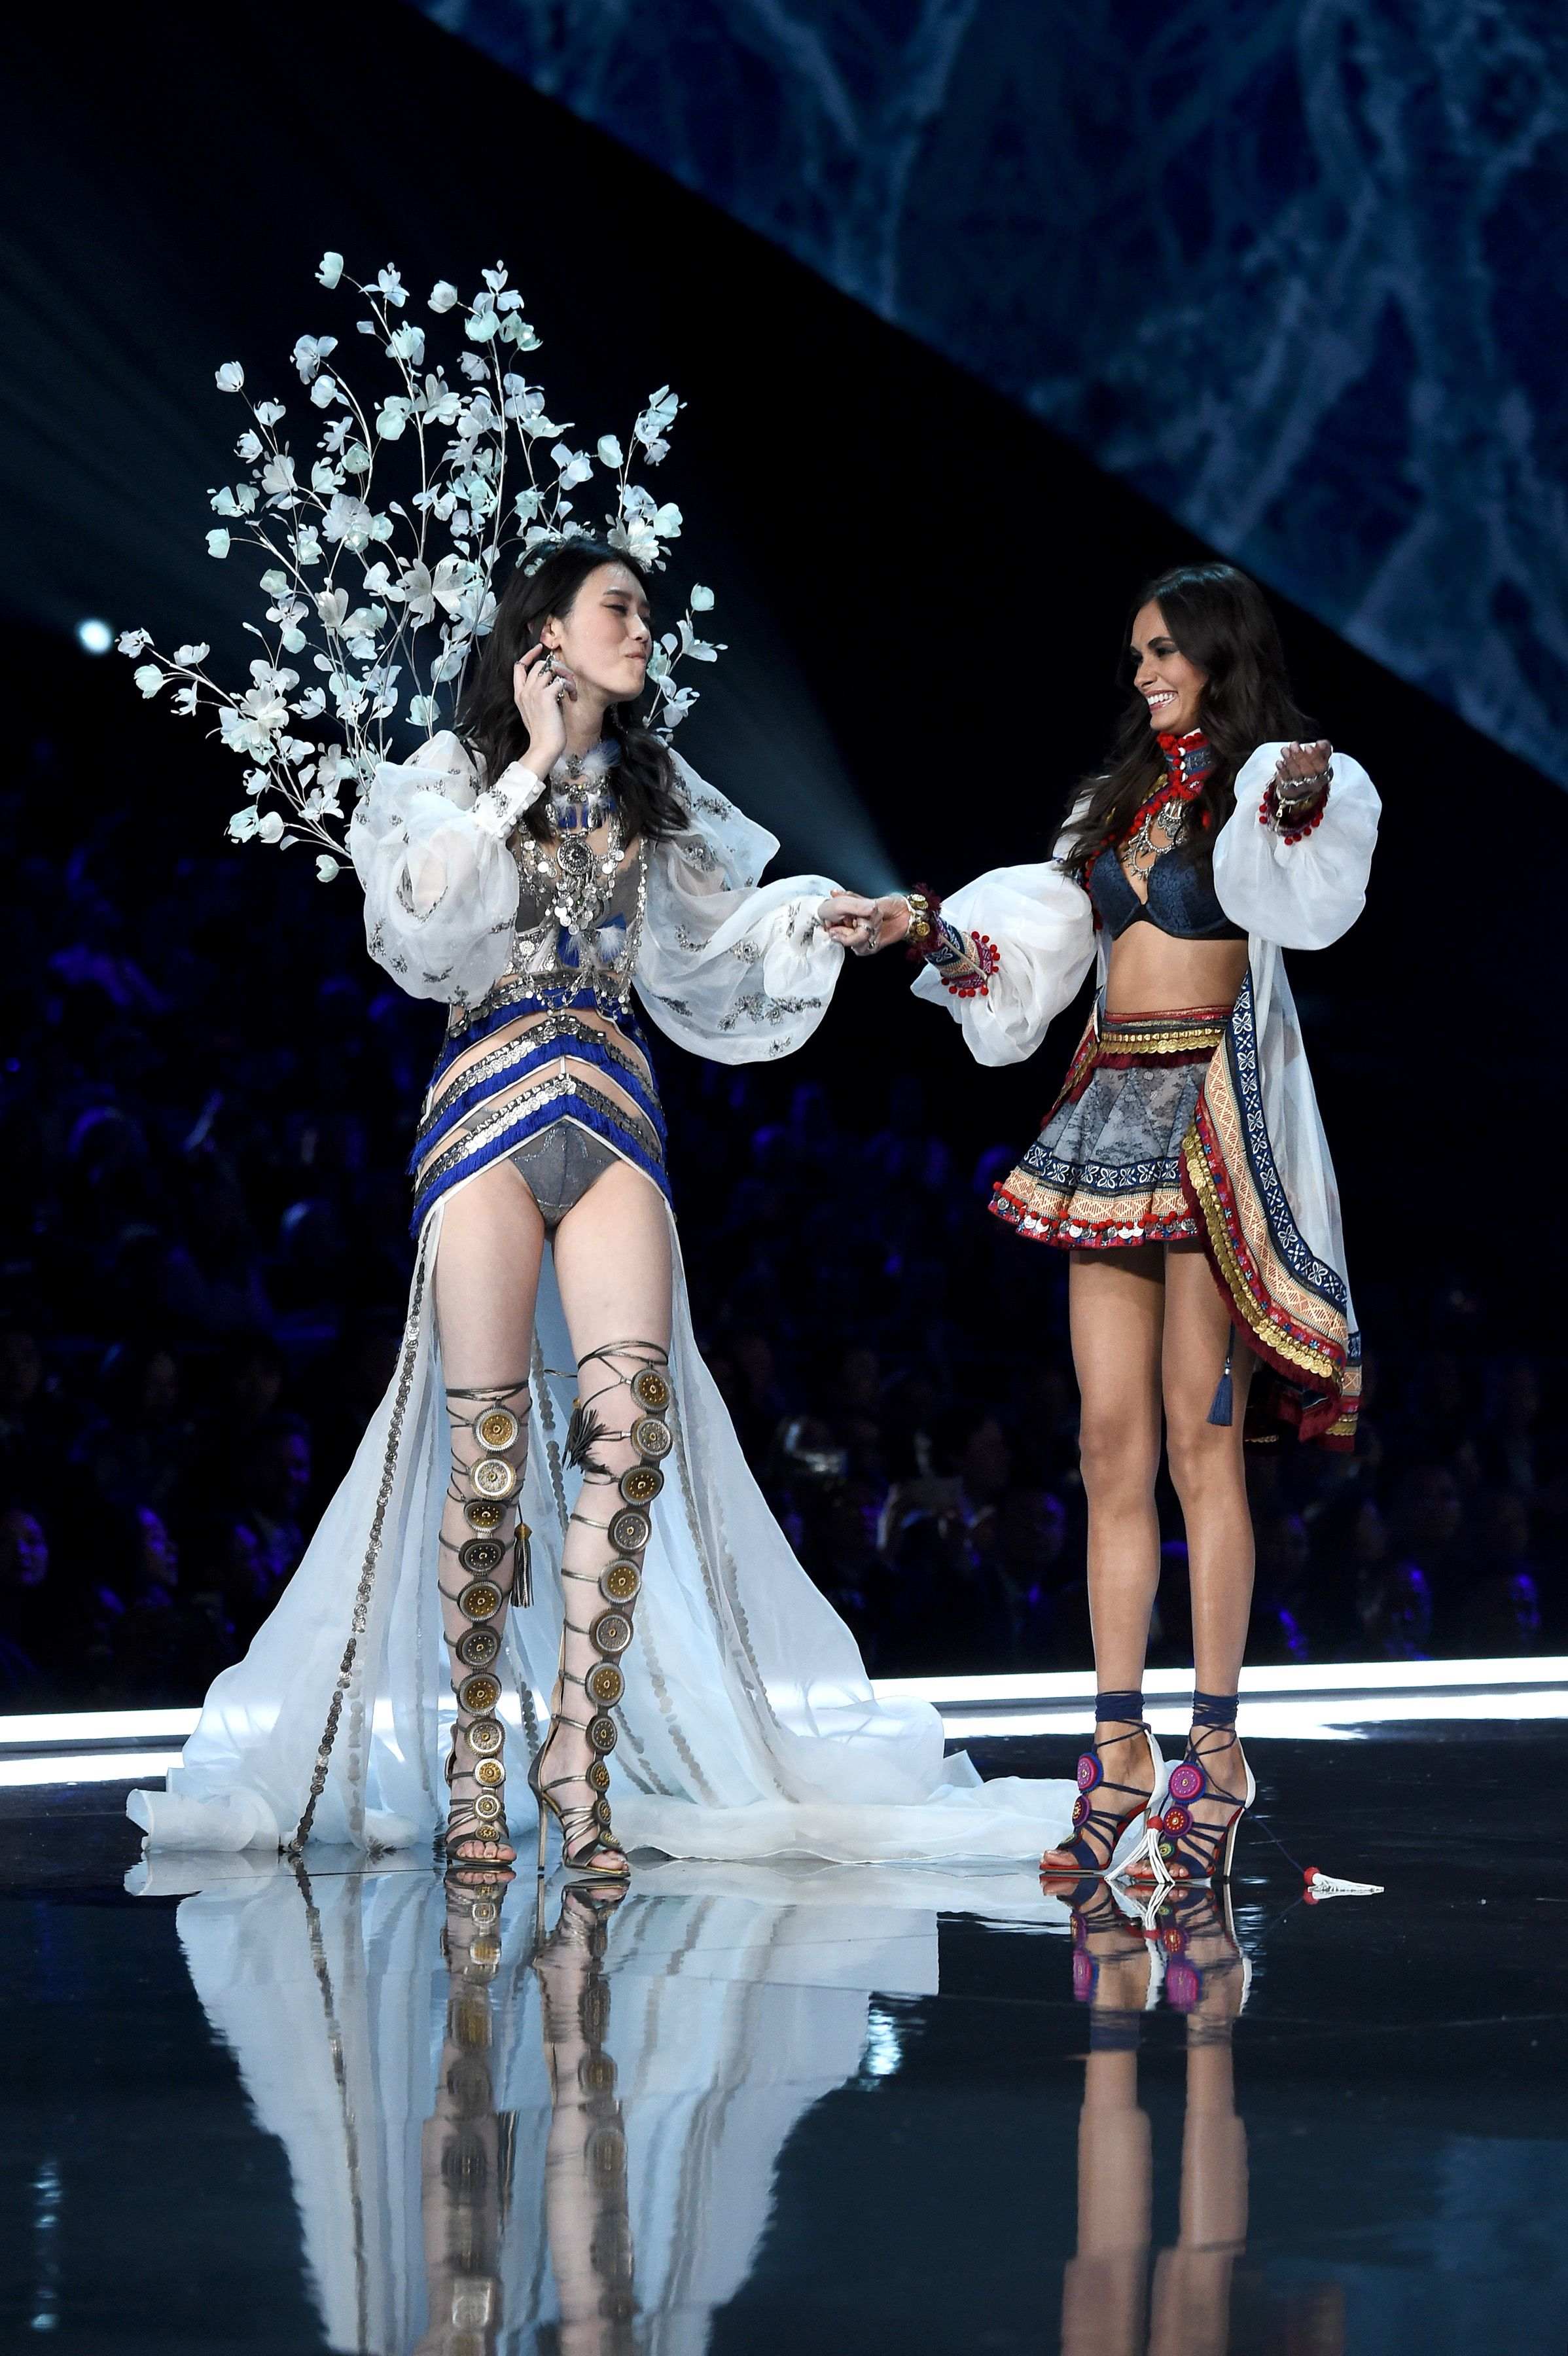 713b32920 Gizele Oliveira on Helping Ming Xi After She Fell at Victoria's Secret  Fashion Show - Gizele Oliveira Interview